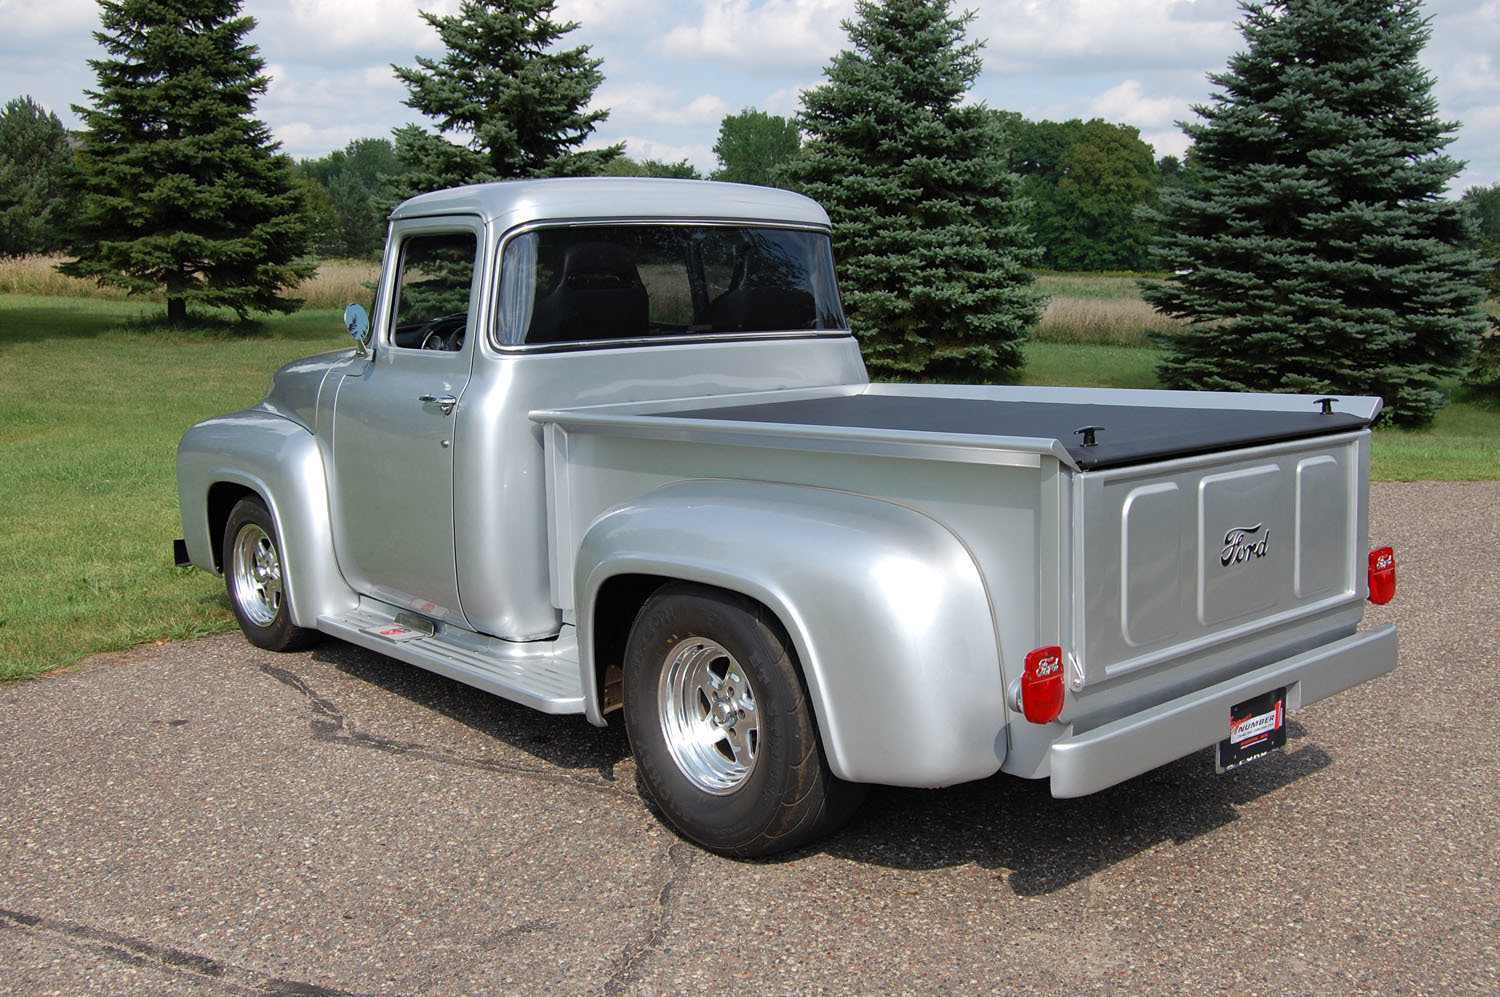 1956 ford f100 classic car dealer rogers minnesota ellingson motorcars. Black Bedroom Furniture Sets. Home Design Ideas